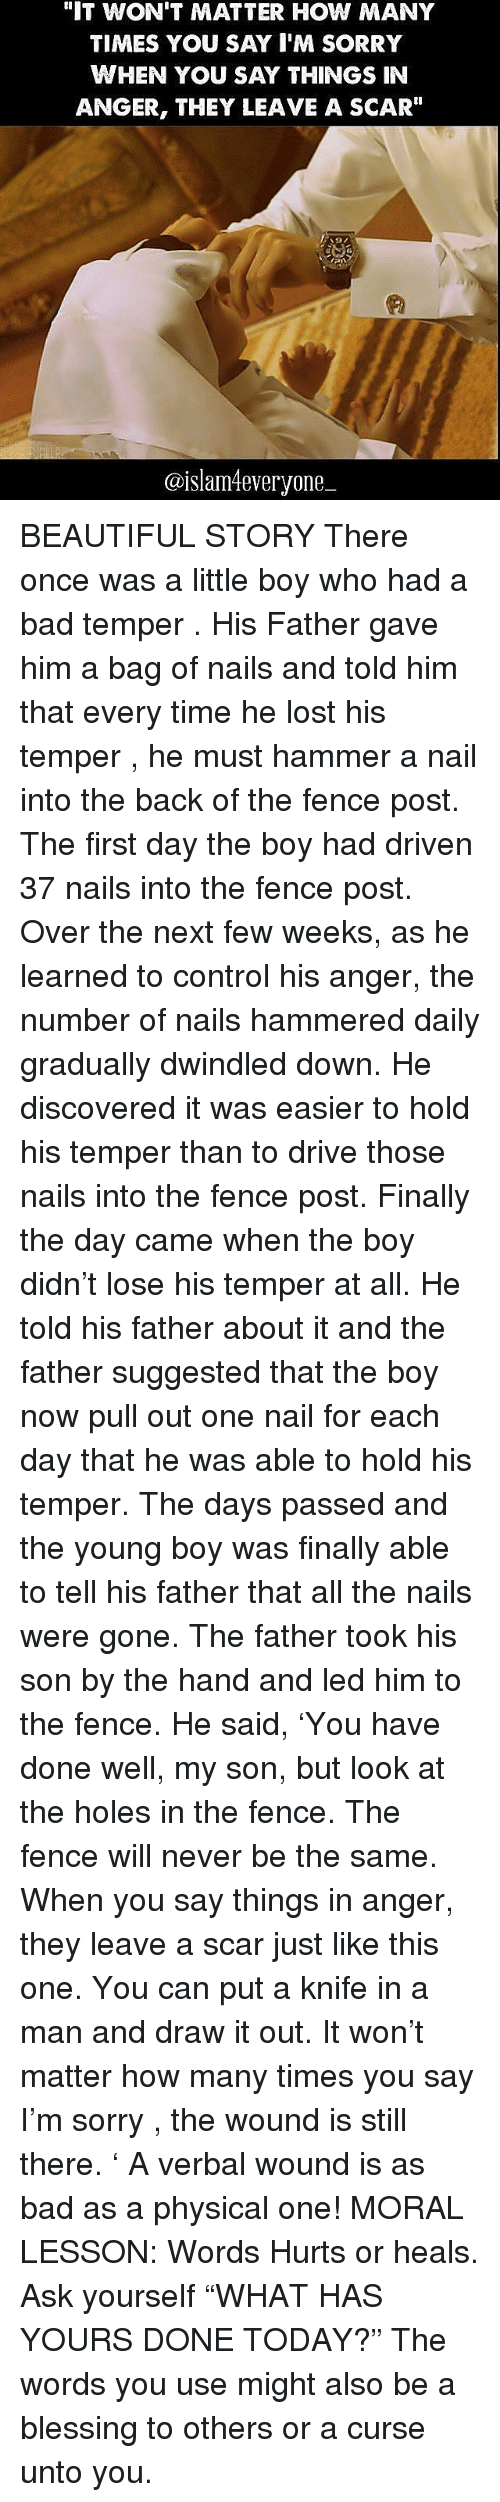 """How Many Times, Memes, and 🤖: """"IT WON'T MATTER HOW MANY  TIMES YOU SAY I'M SORRY  WHEN YOU SAY THINGS IN  ANGER, THEY LEAVE A SCAR""""  UMBLR  @islam4everyone BEAUTIFUL STORY There once was a little boy who had a bad temper . His Father gave him a bag of nails and told him that every time he lost his temper , he must hammer a nail into the back of the fence post. The first day the boy had driven 37 nails into the fence post. Over the next few weeks, as he learned to control his anger, the number of nails hammered daily gradually dwindled down. He discovered it was easier to hold his temper than to drive those nails into the fence post. Finally the day came when the boy didn't lose his temper at all. He told his father about it and the father suggested that the boy now pull out one nail for each day that he was able to hold his temper. The days passed and the young boy was finally able to tell his father that all the nails were gone. The father took his son by the hand and led him to the fence. He said, 'You have done well, my son, but look at the holes in the fence. The fence will never be the same. When you say things in anger, they leave a scar just like this one. You can put a knife in a man and draw it out. It won't matter how many times you say I'm sorry , the wound is still there. ' A verbal wound is as bad as a physical one! MORAL LESSON: Words Hurts or heals. Ask yourself """"WHAT HAS YOURS DONE TODAY?"""" The words you use might also be a blessing to others or a curse unto you."""